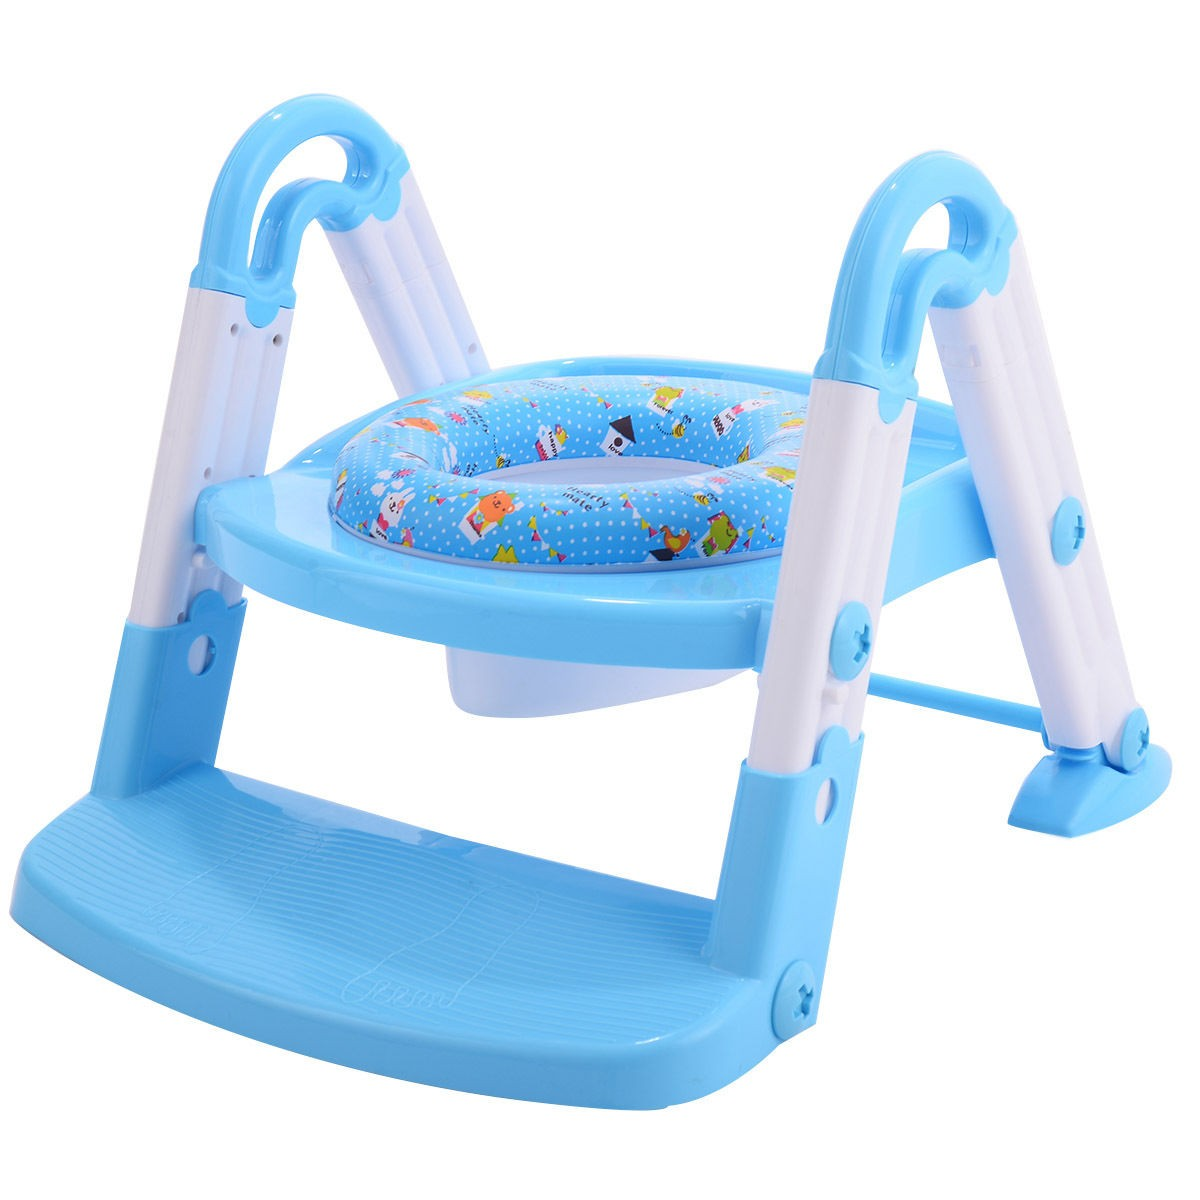 Portable Toddler Toilet Seat